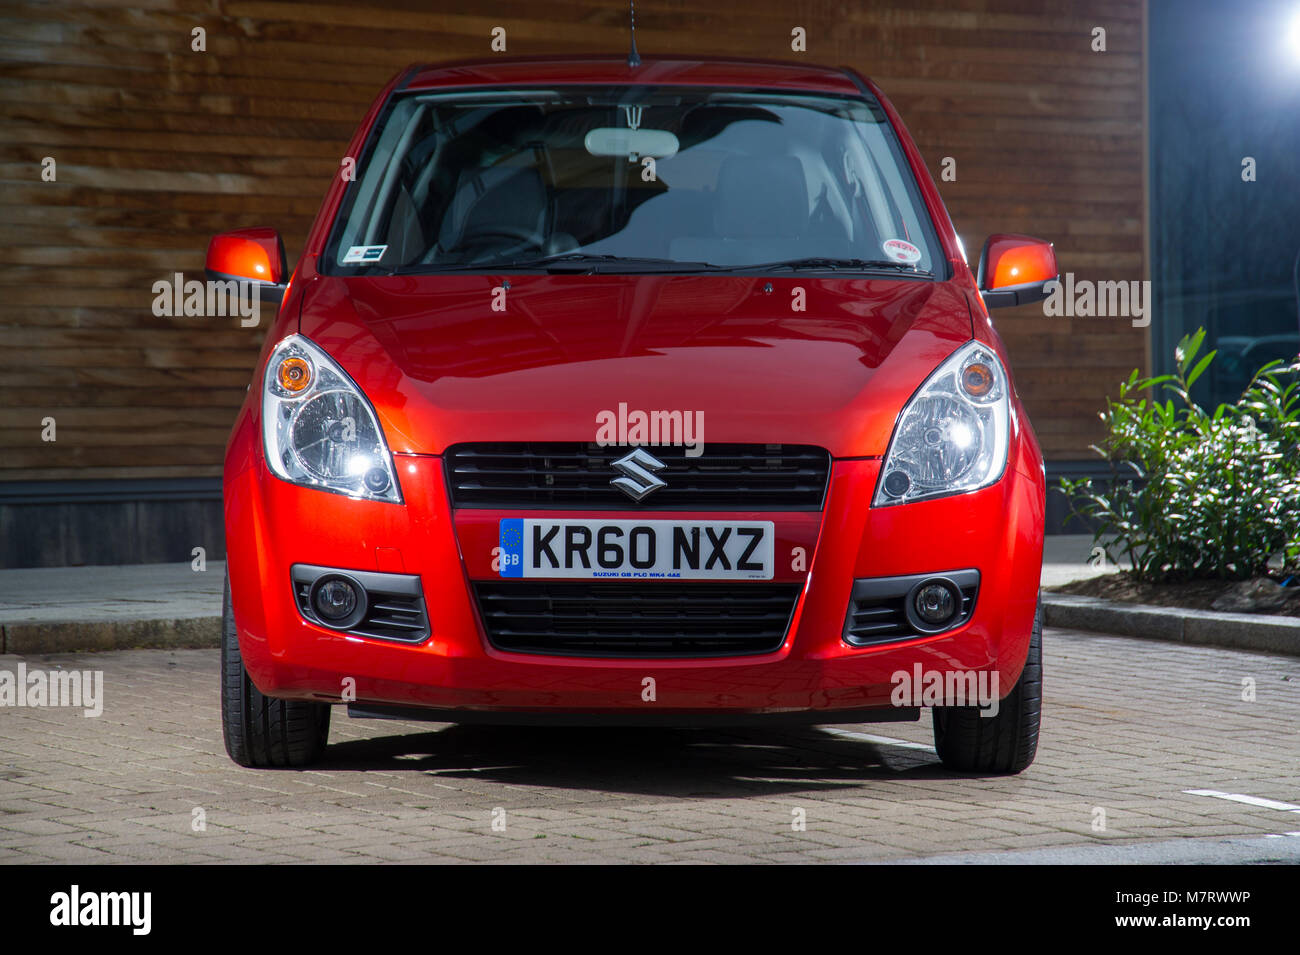 2011 Suzuki Splash city car - Stock Image